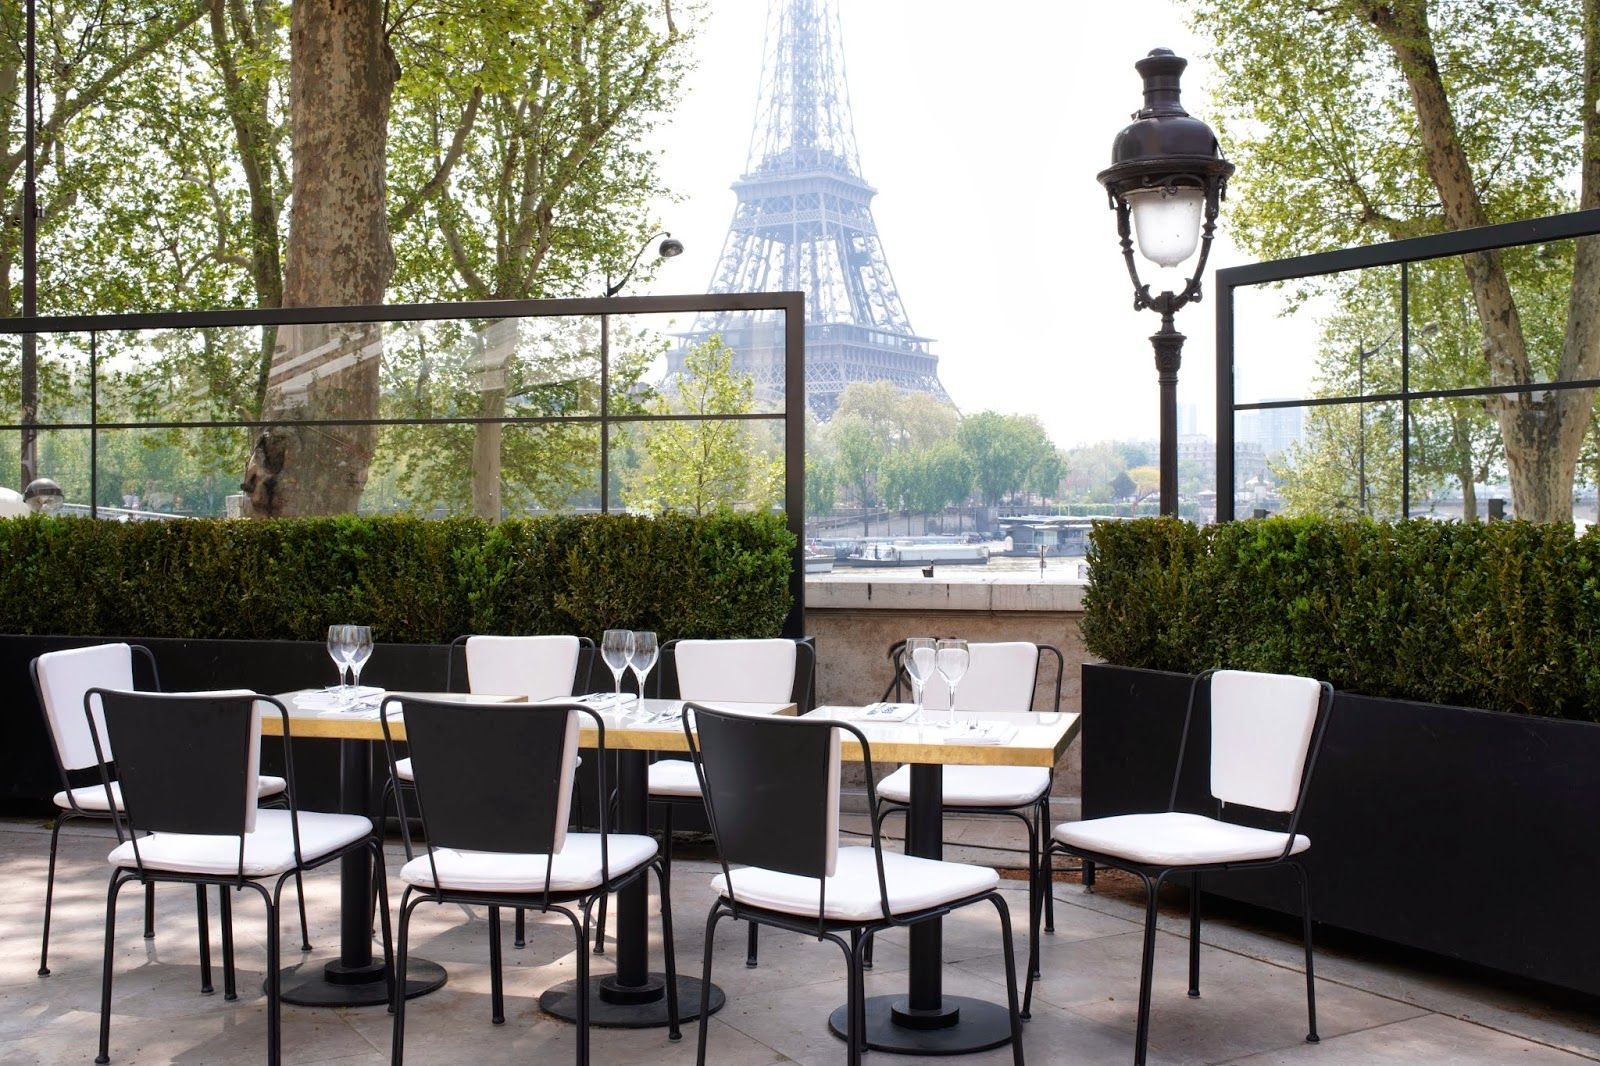 Outdoor cafe in paris with tower in background - Habitually Chic Shares This Terrace Dining Area From Restaurant Monsieur Bleu